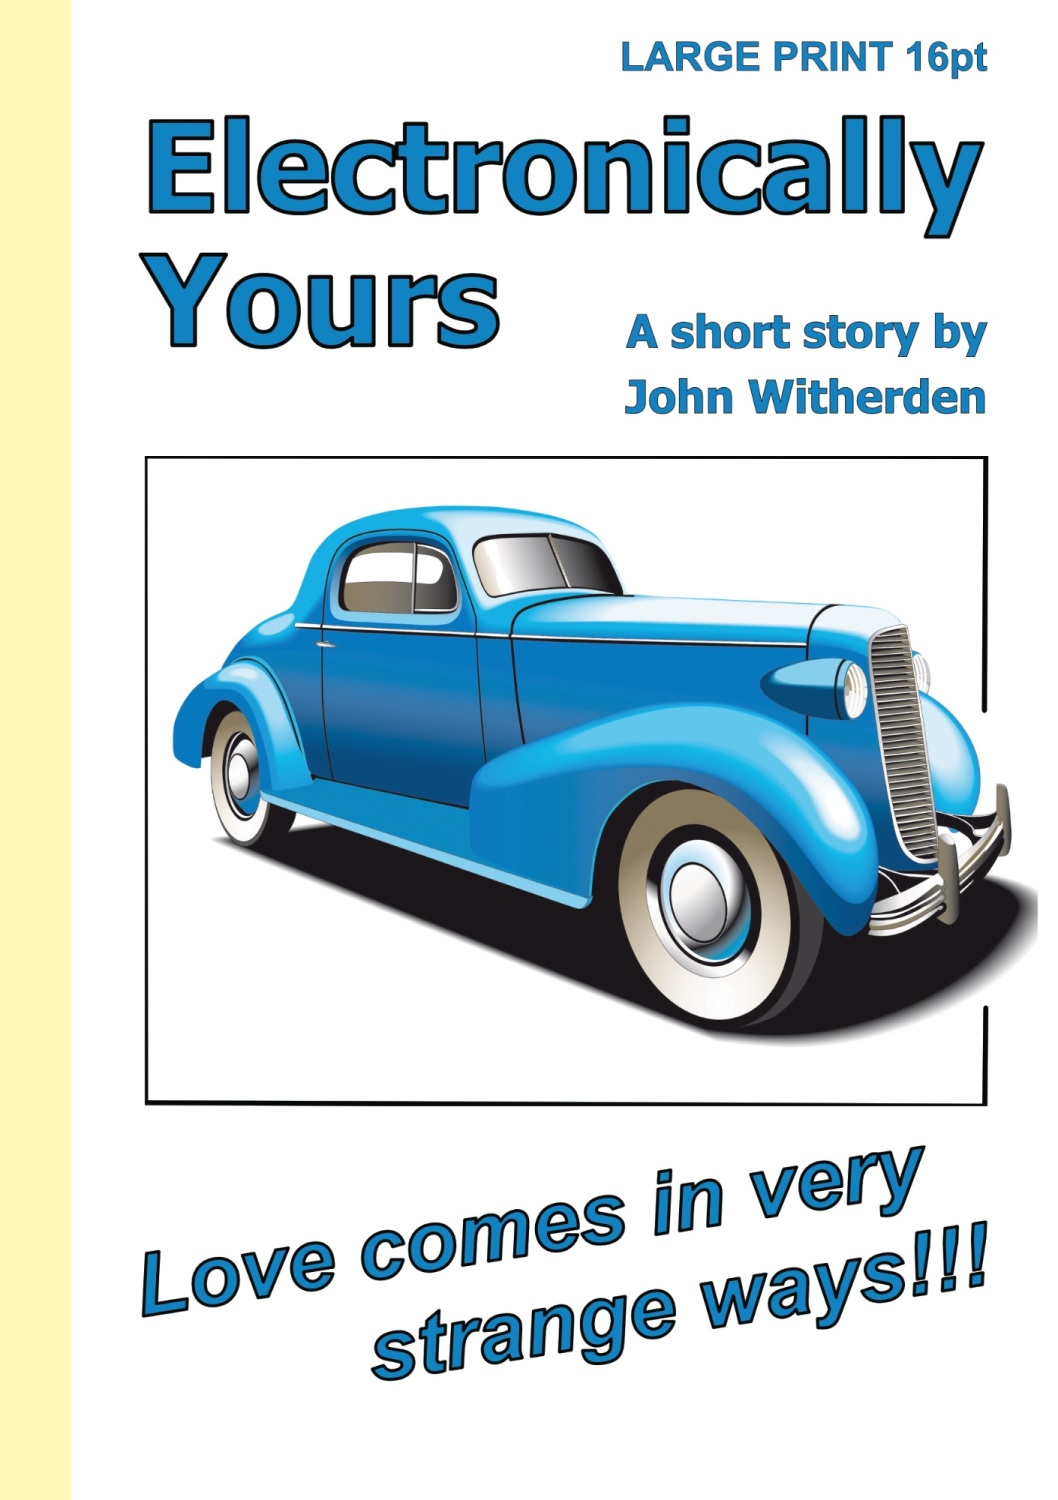 Electronically Yours - Written by John Witherden